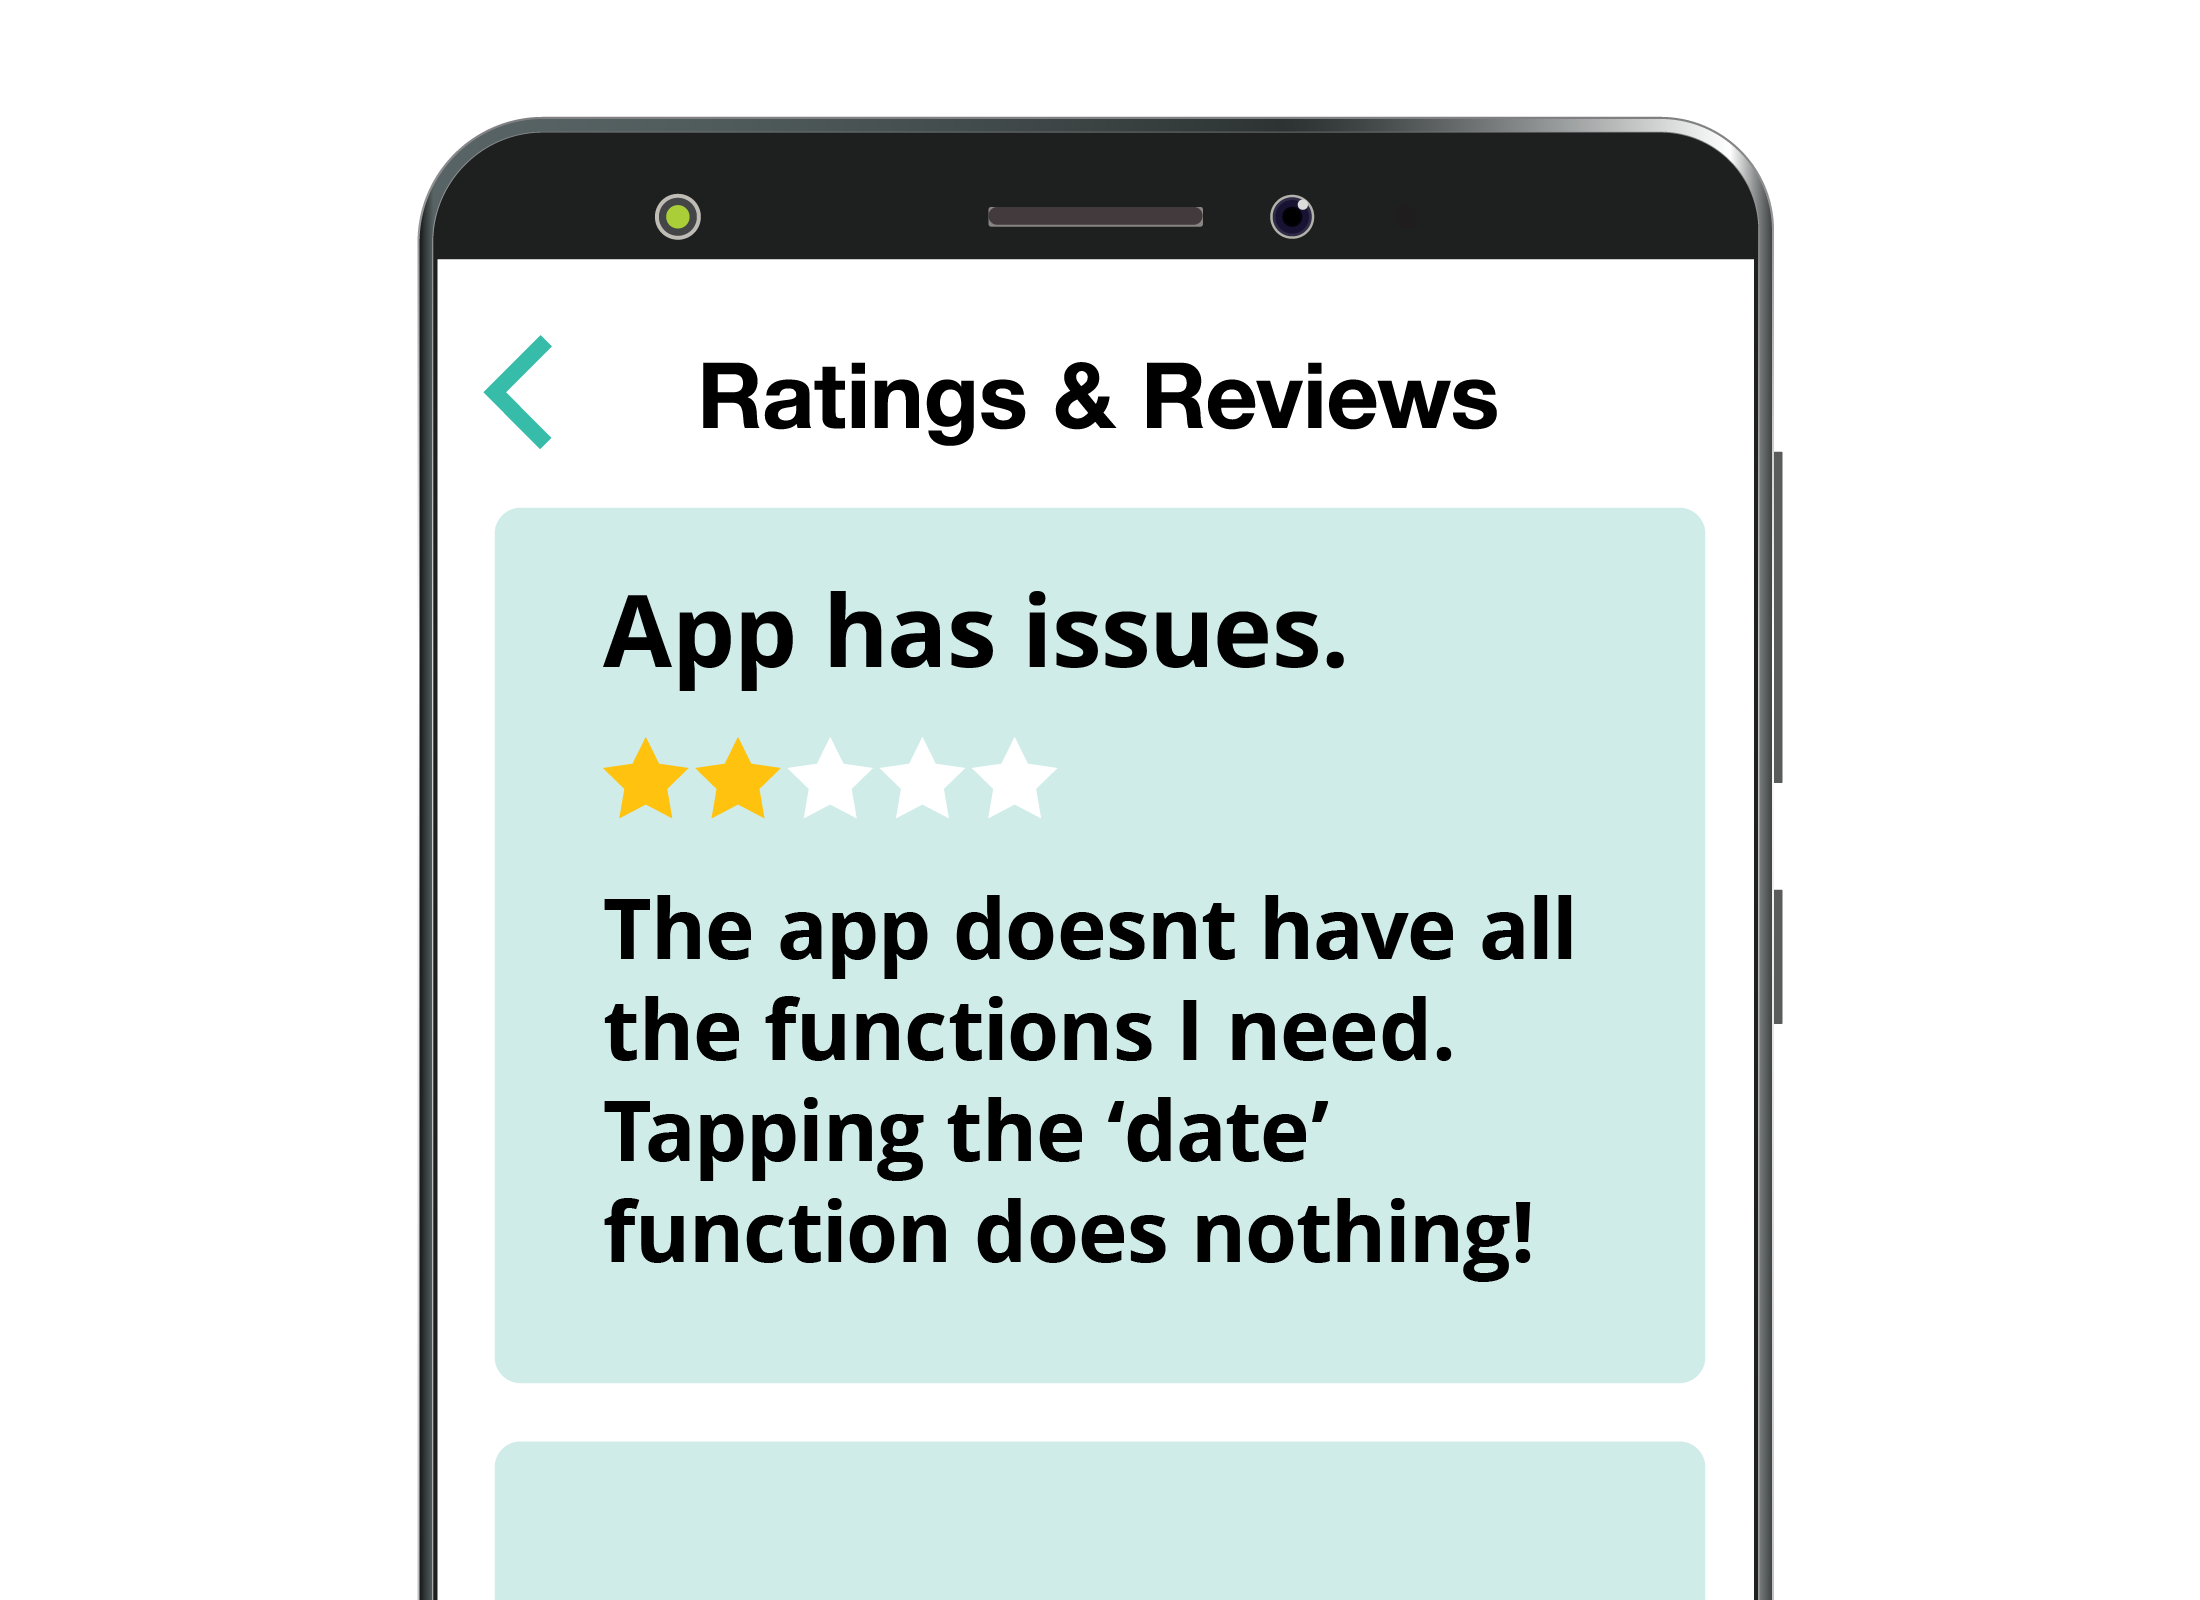 An example of a low 2 star rating and feedback for an app on the App Store